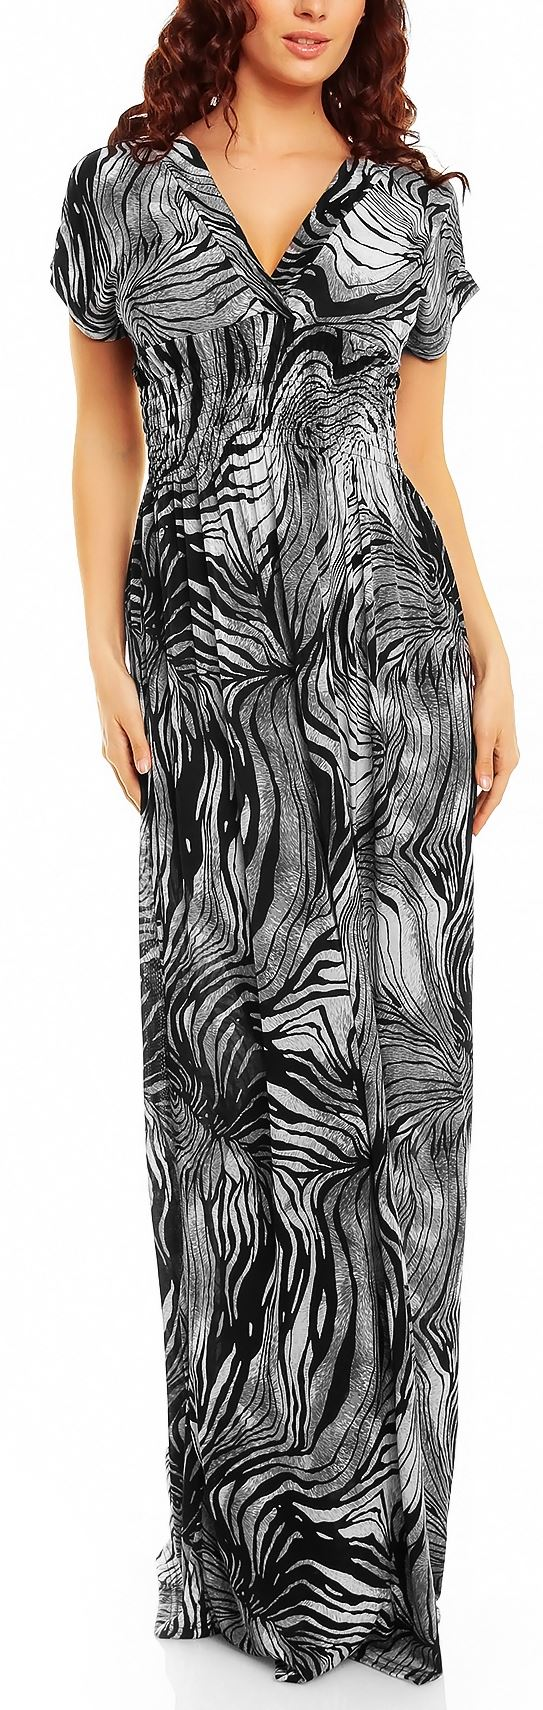 Ladies Floral Animal Print Summer Beach Casual Holiday Maxi Day Dress UK 8 - 22